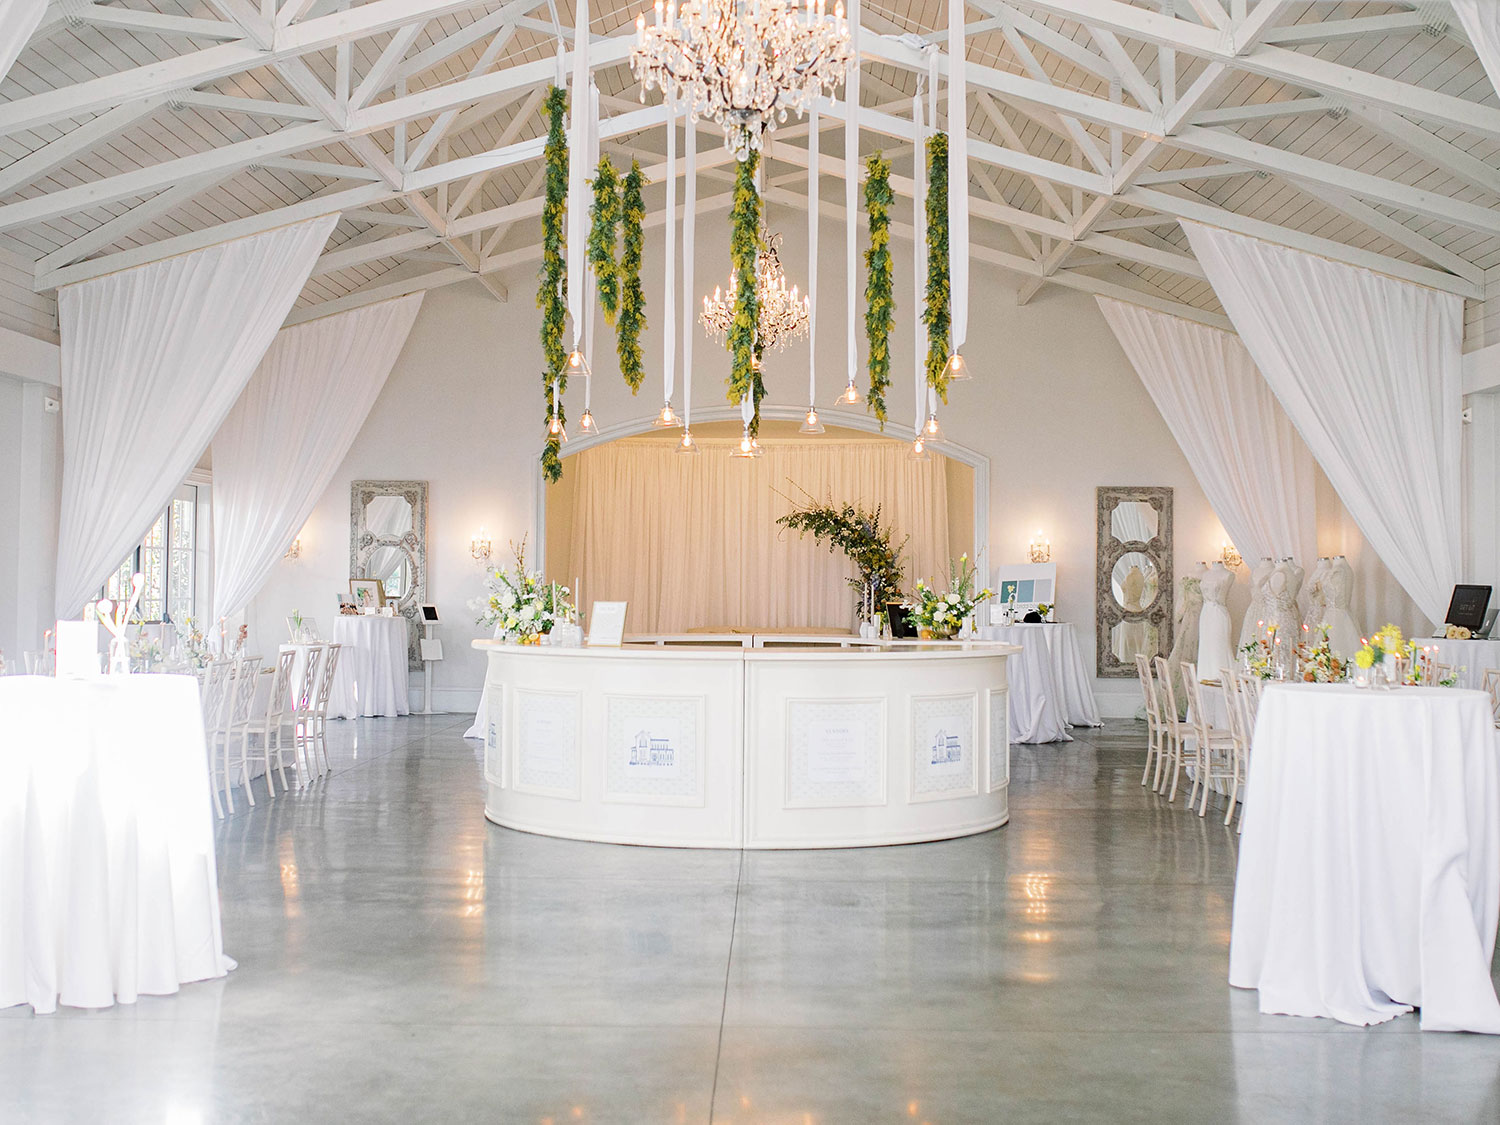 Merrimon Wynne Carriage House decked out in yellow, white and light blue florals